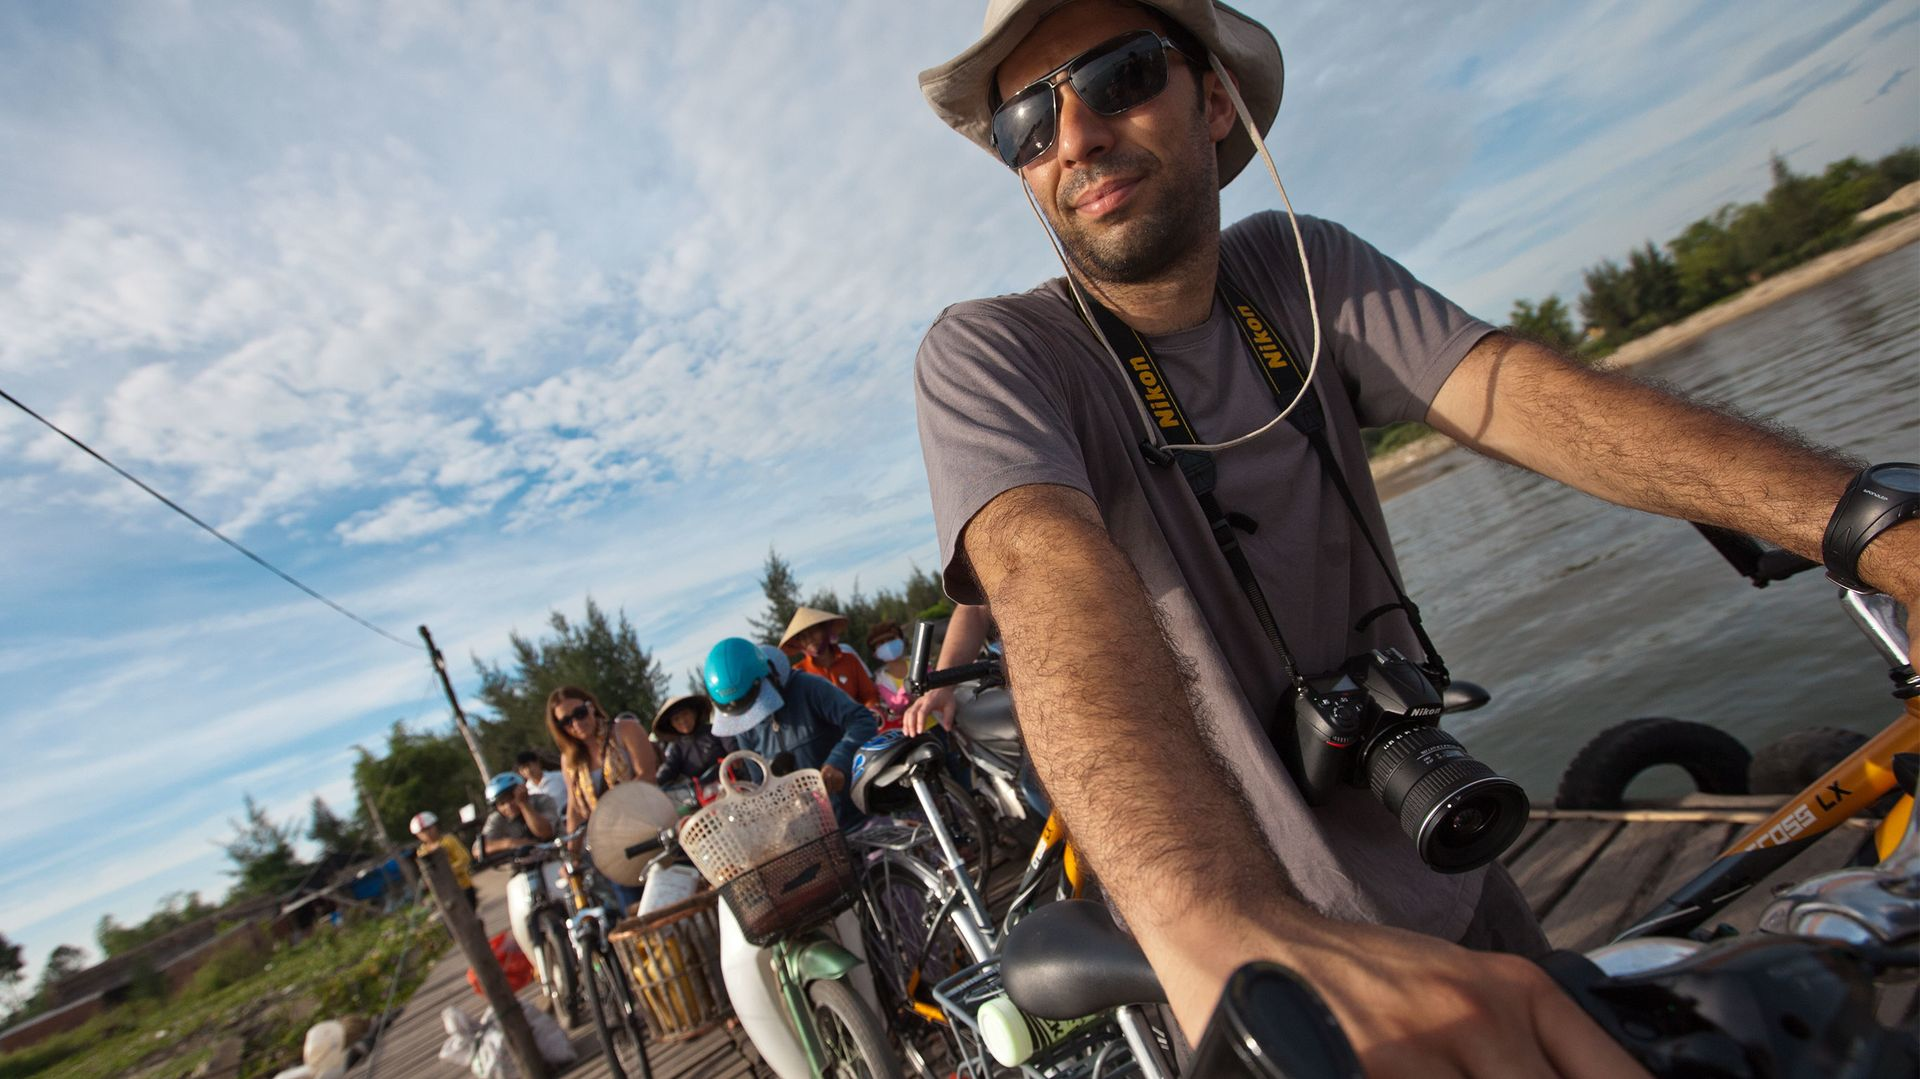 Cycle Indochina: Ho Chi Minh City to Siem Reap